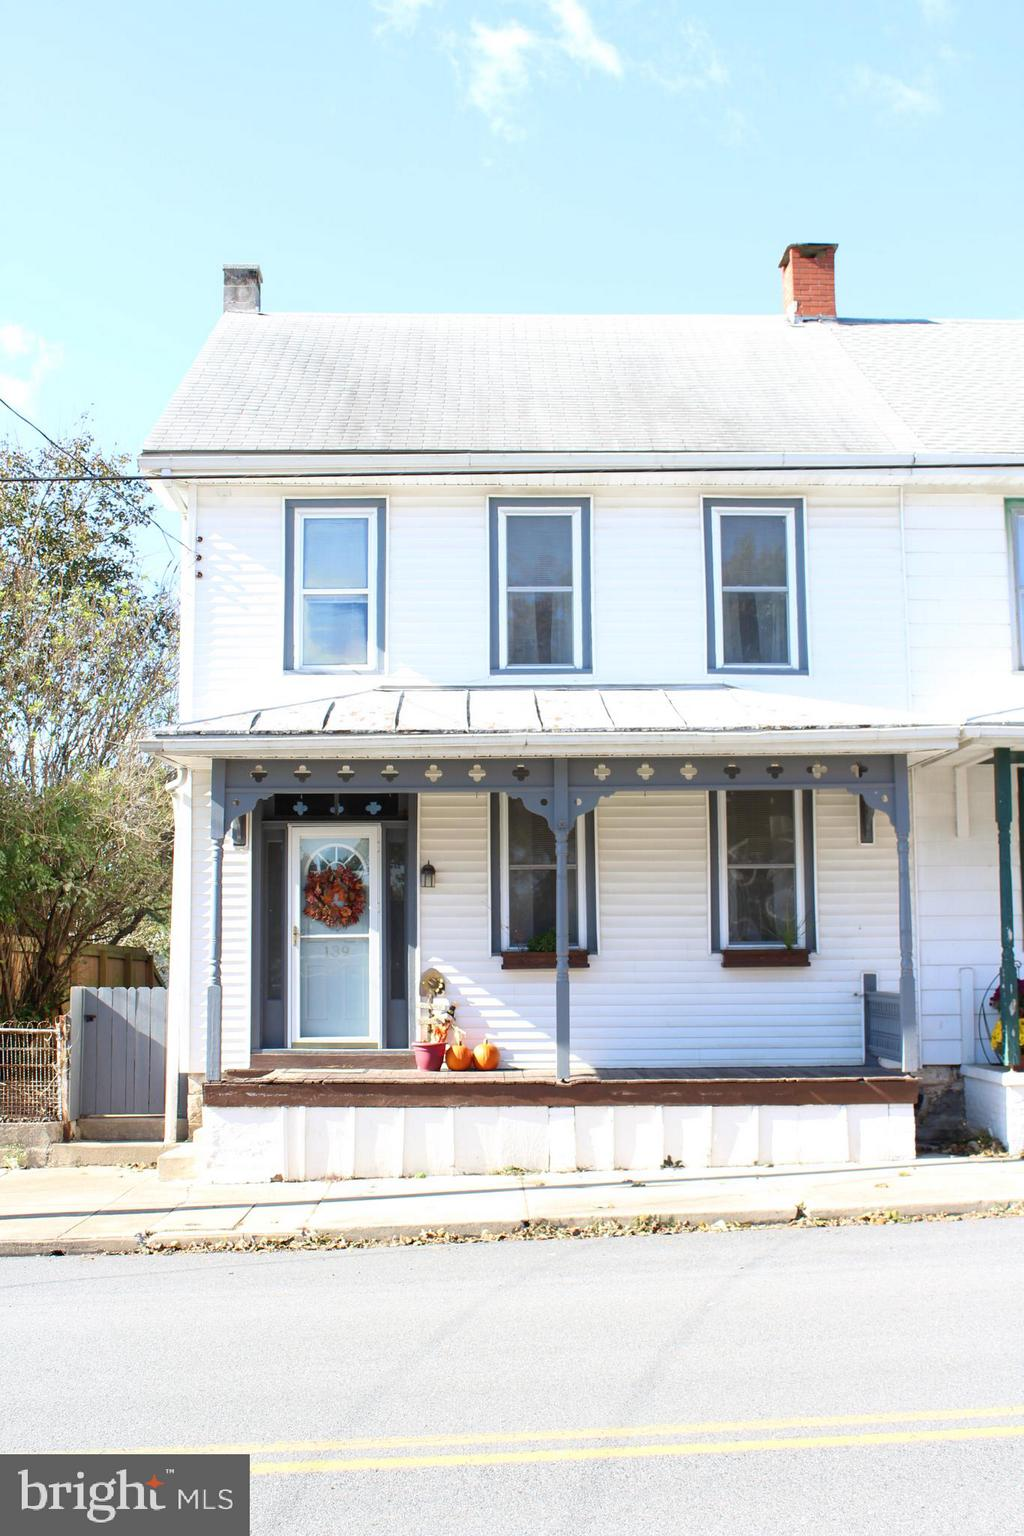 139 N CENTER STREET, FREDERICKSBURG, PA 17026